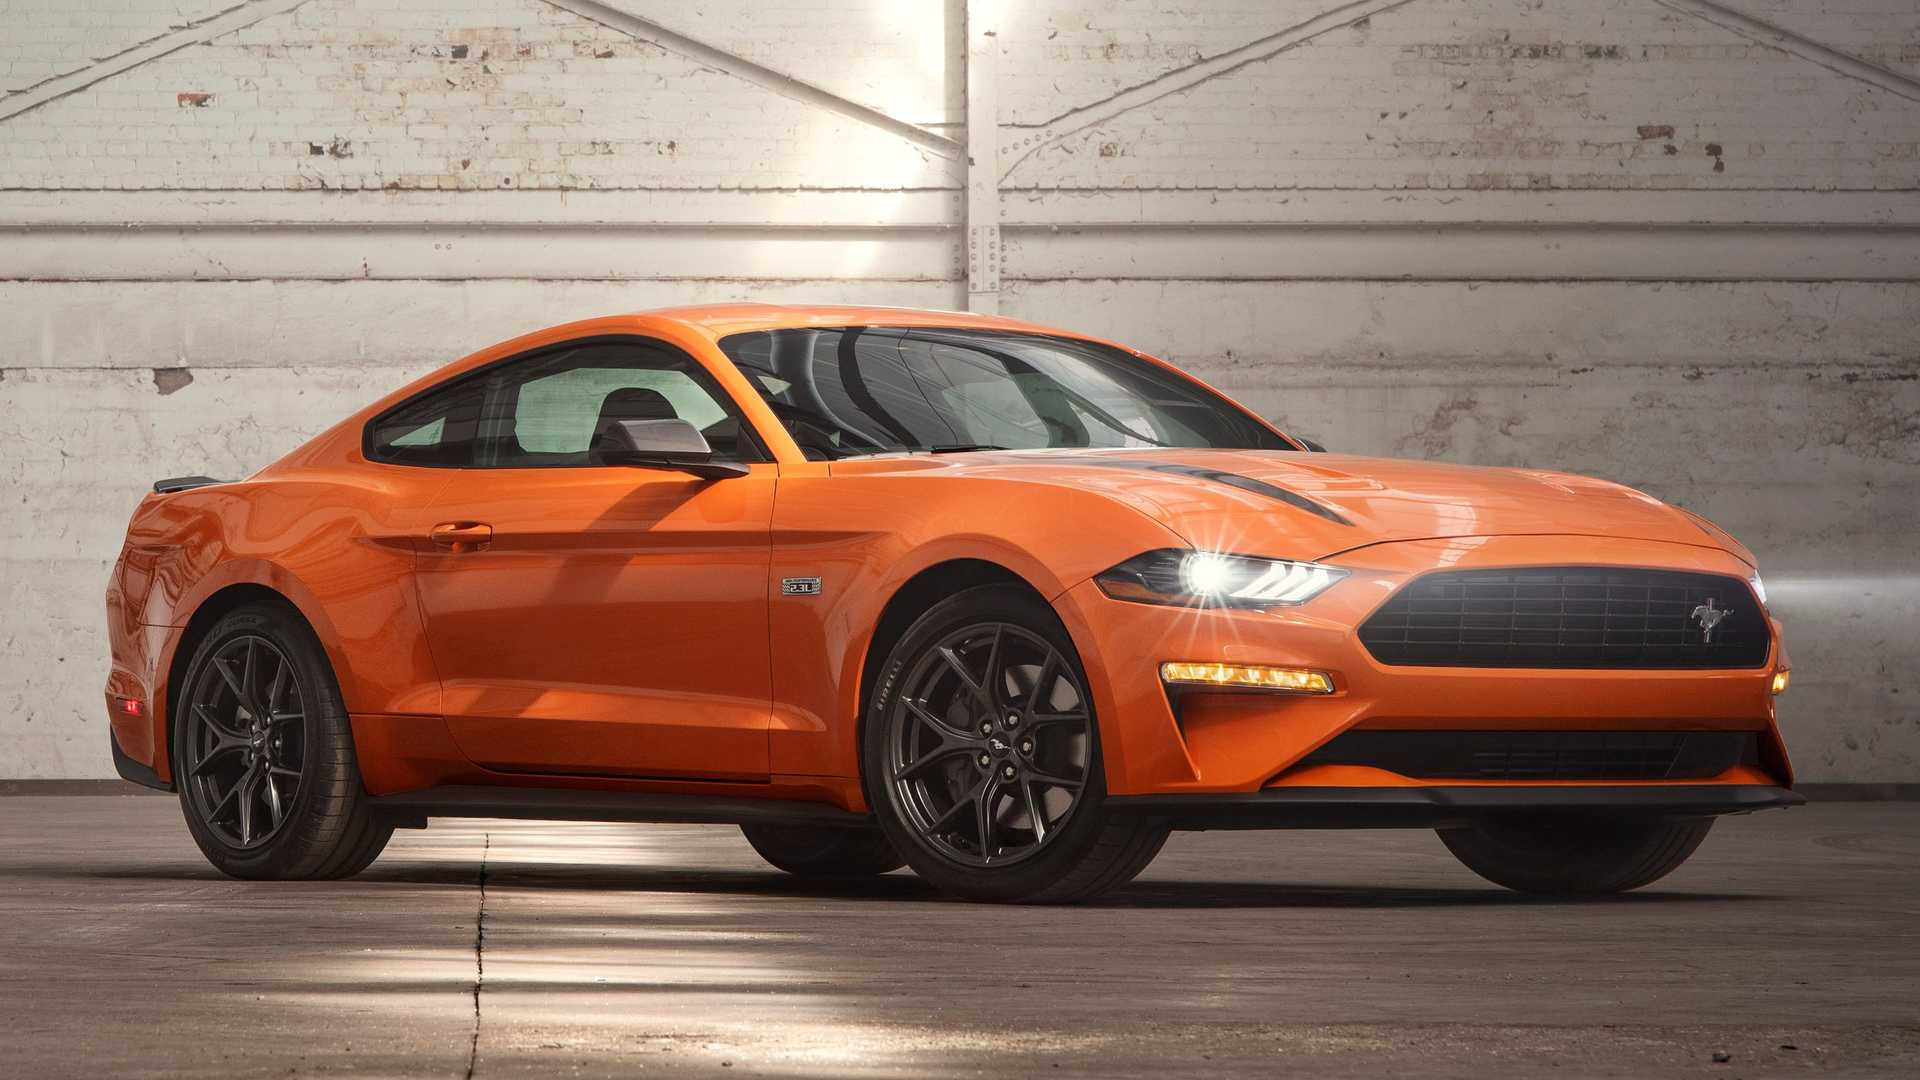 47 All New 2020 Mustang New Concept